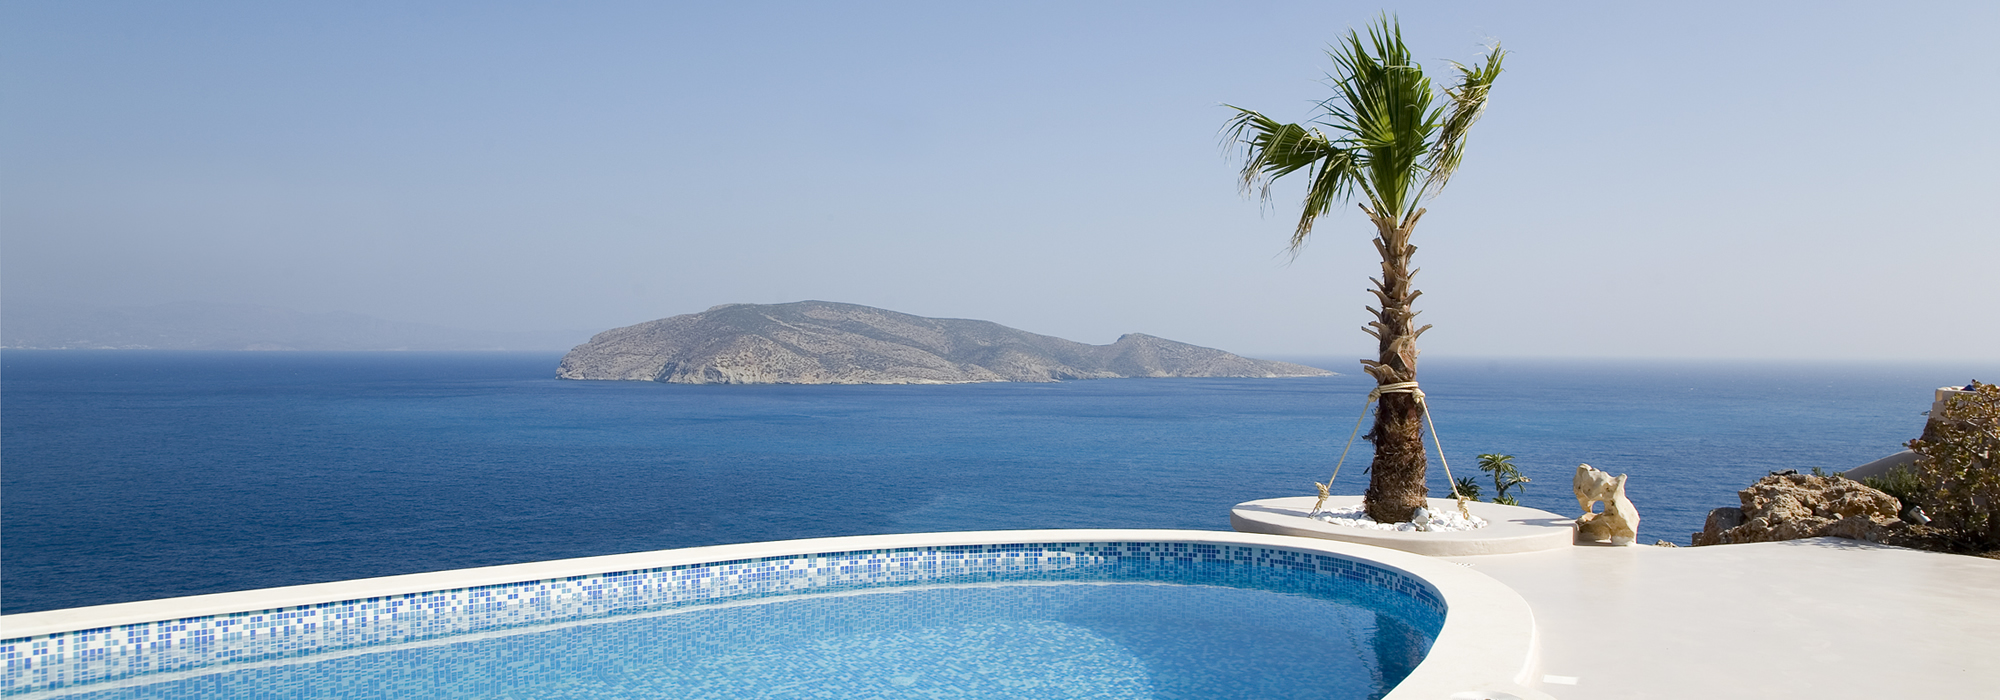 Unique, Cycladic-style 3 bedroom villa with pool and stunning sea views